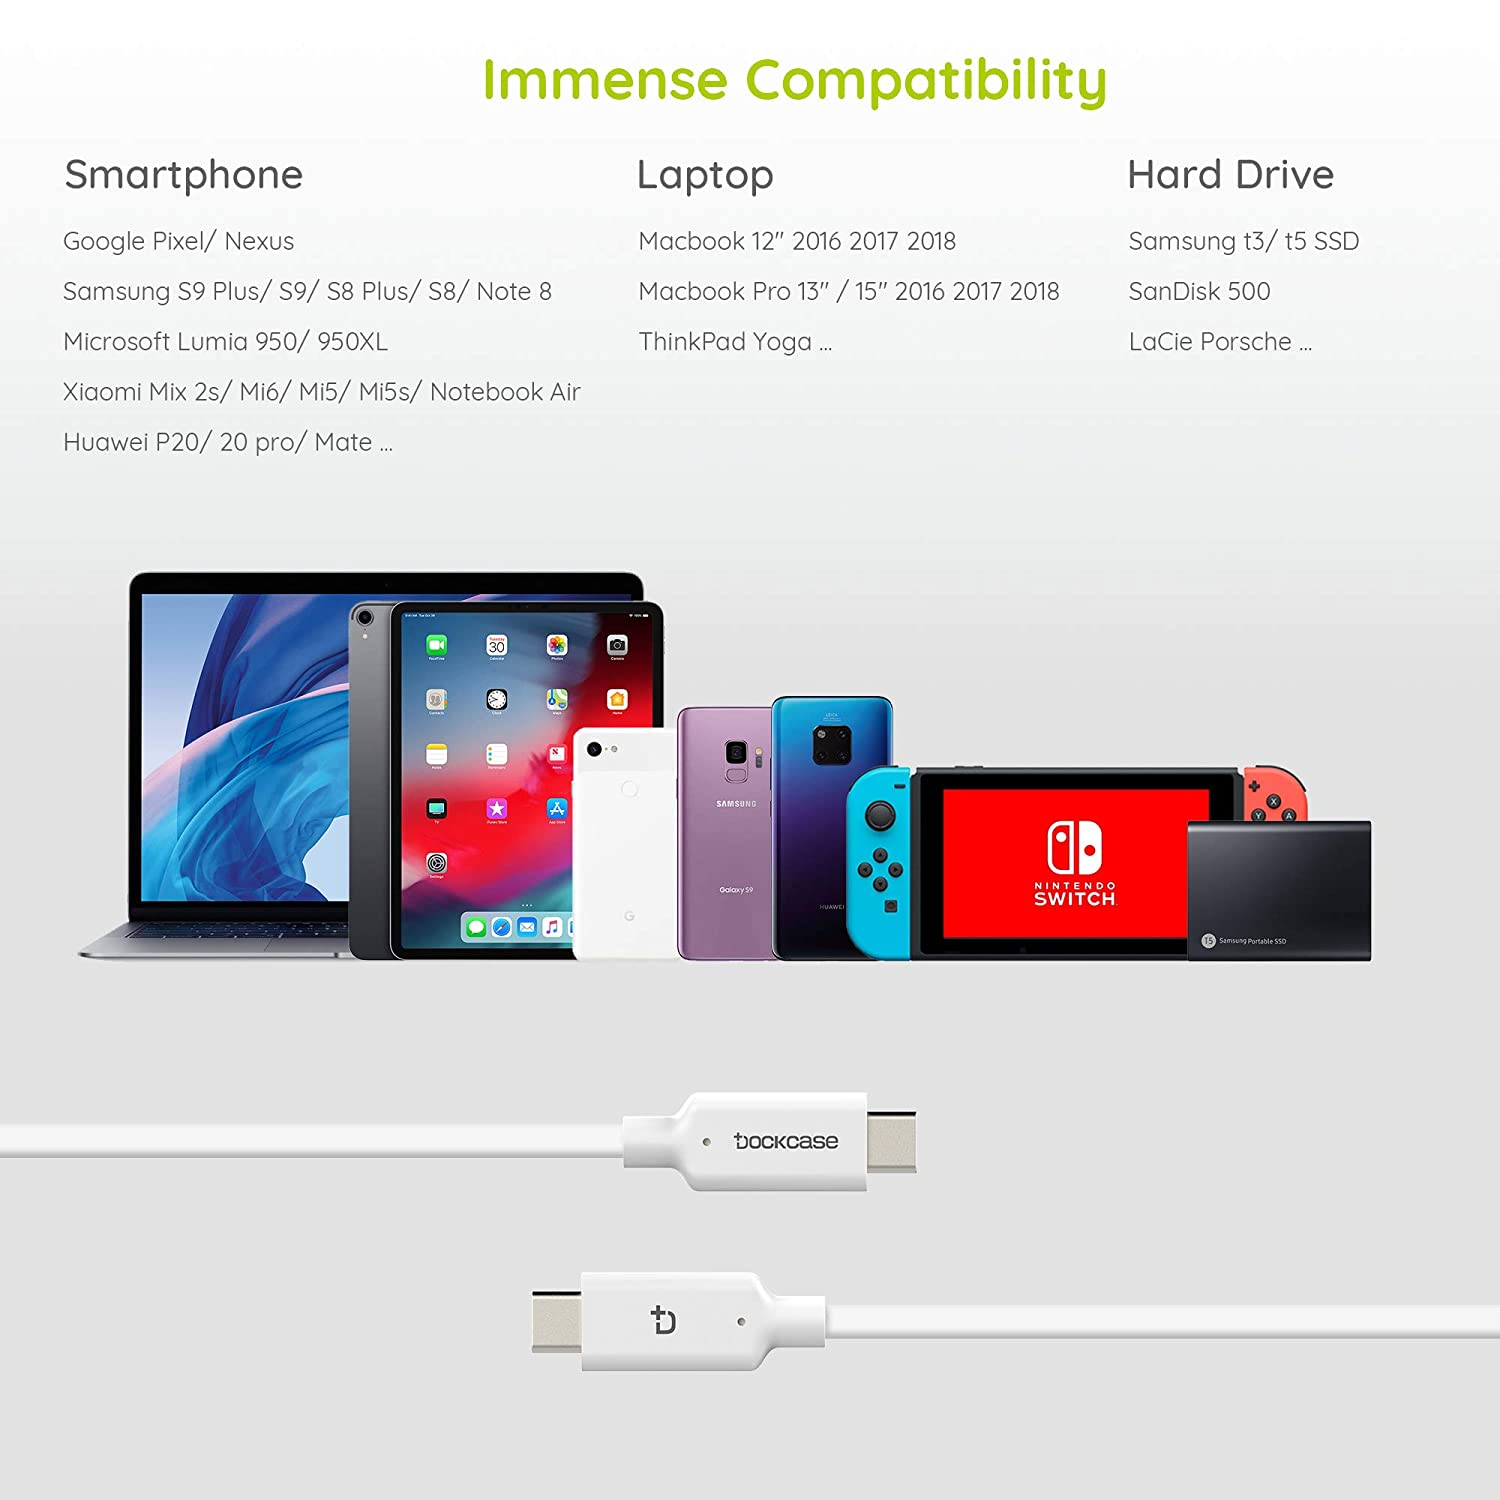 Samsung Galaxy S9 Note 9 8 S8 Plus Smartphone T3 T5 SSD Hard Drive USB 3.1 Gen 2 Cable USB C to USB C Cable 3Ft White Fast Charging Data Syncing at 10Gbps// 100W for New MacBook Pro Air iPad 3.2ft DockCase